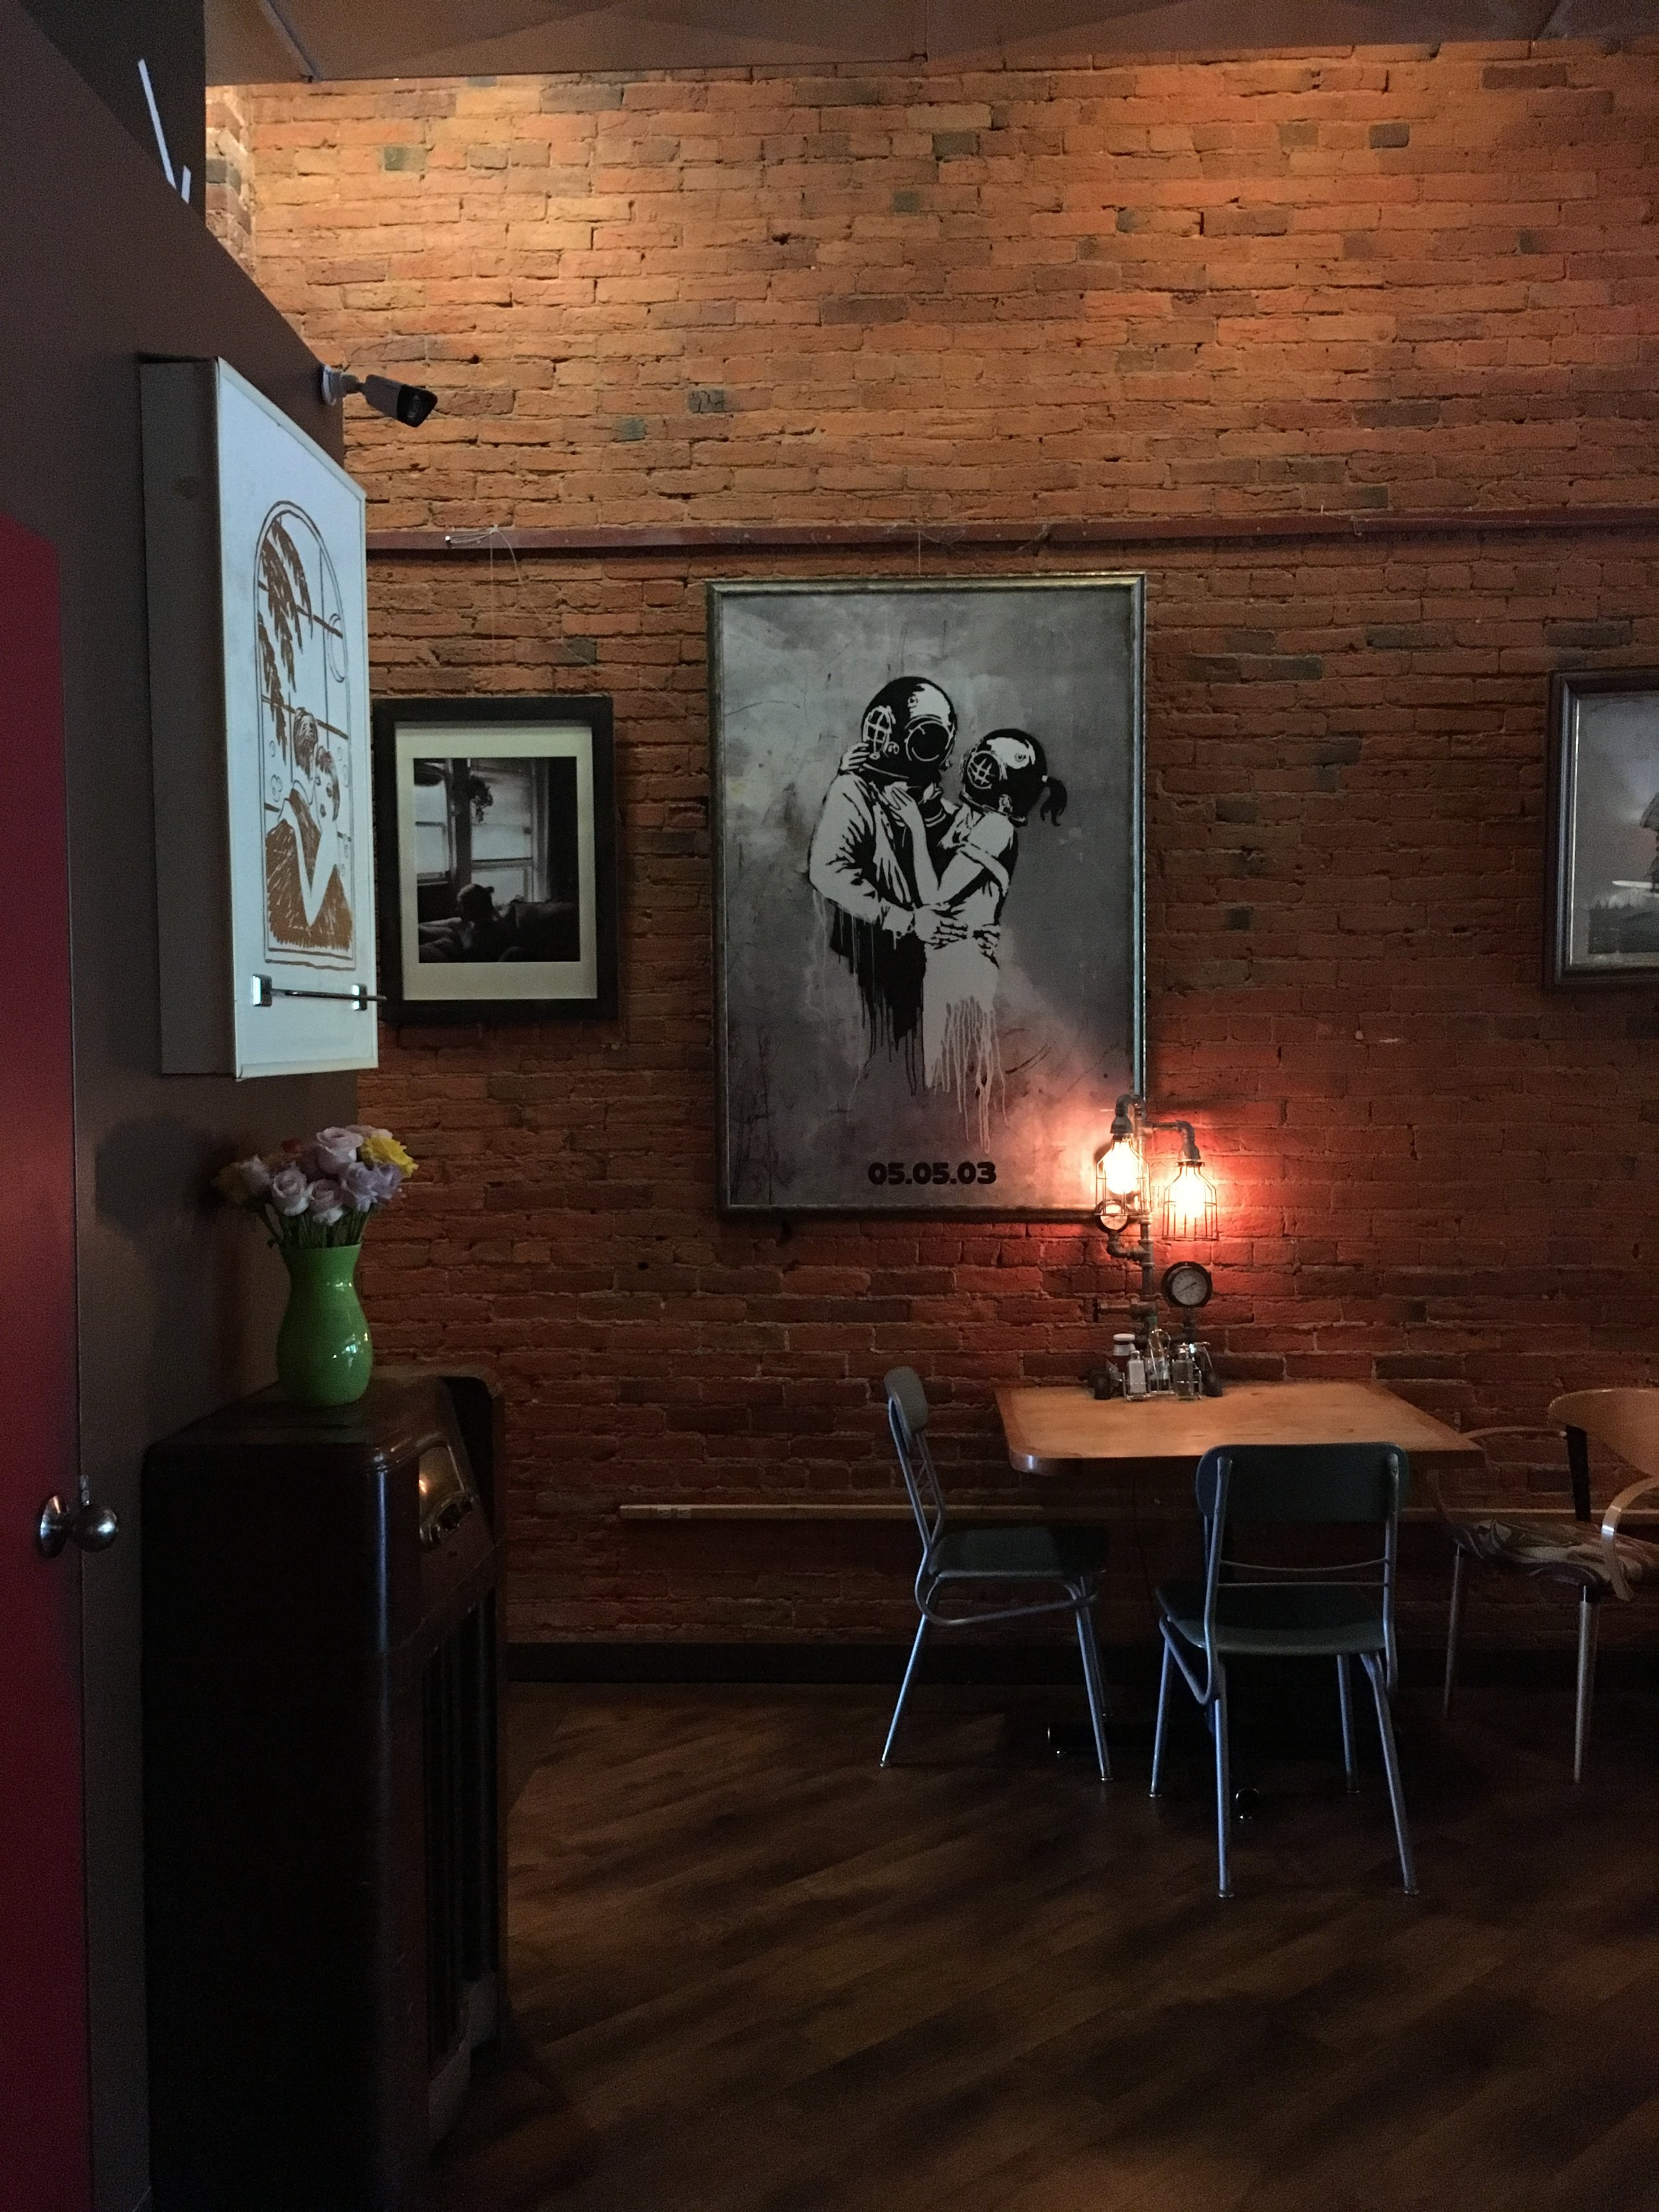 One of the many rooms inside Nucleus Cafe